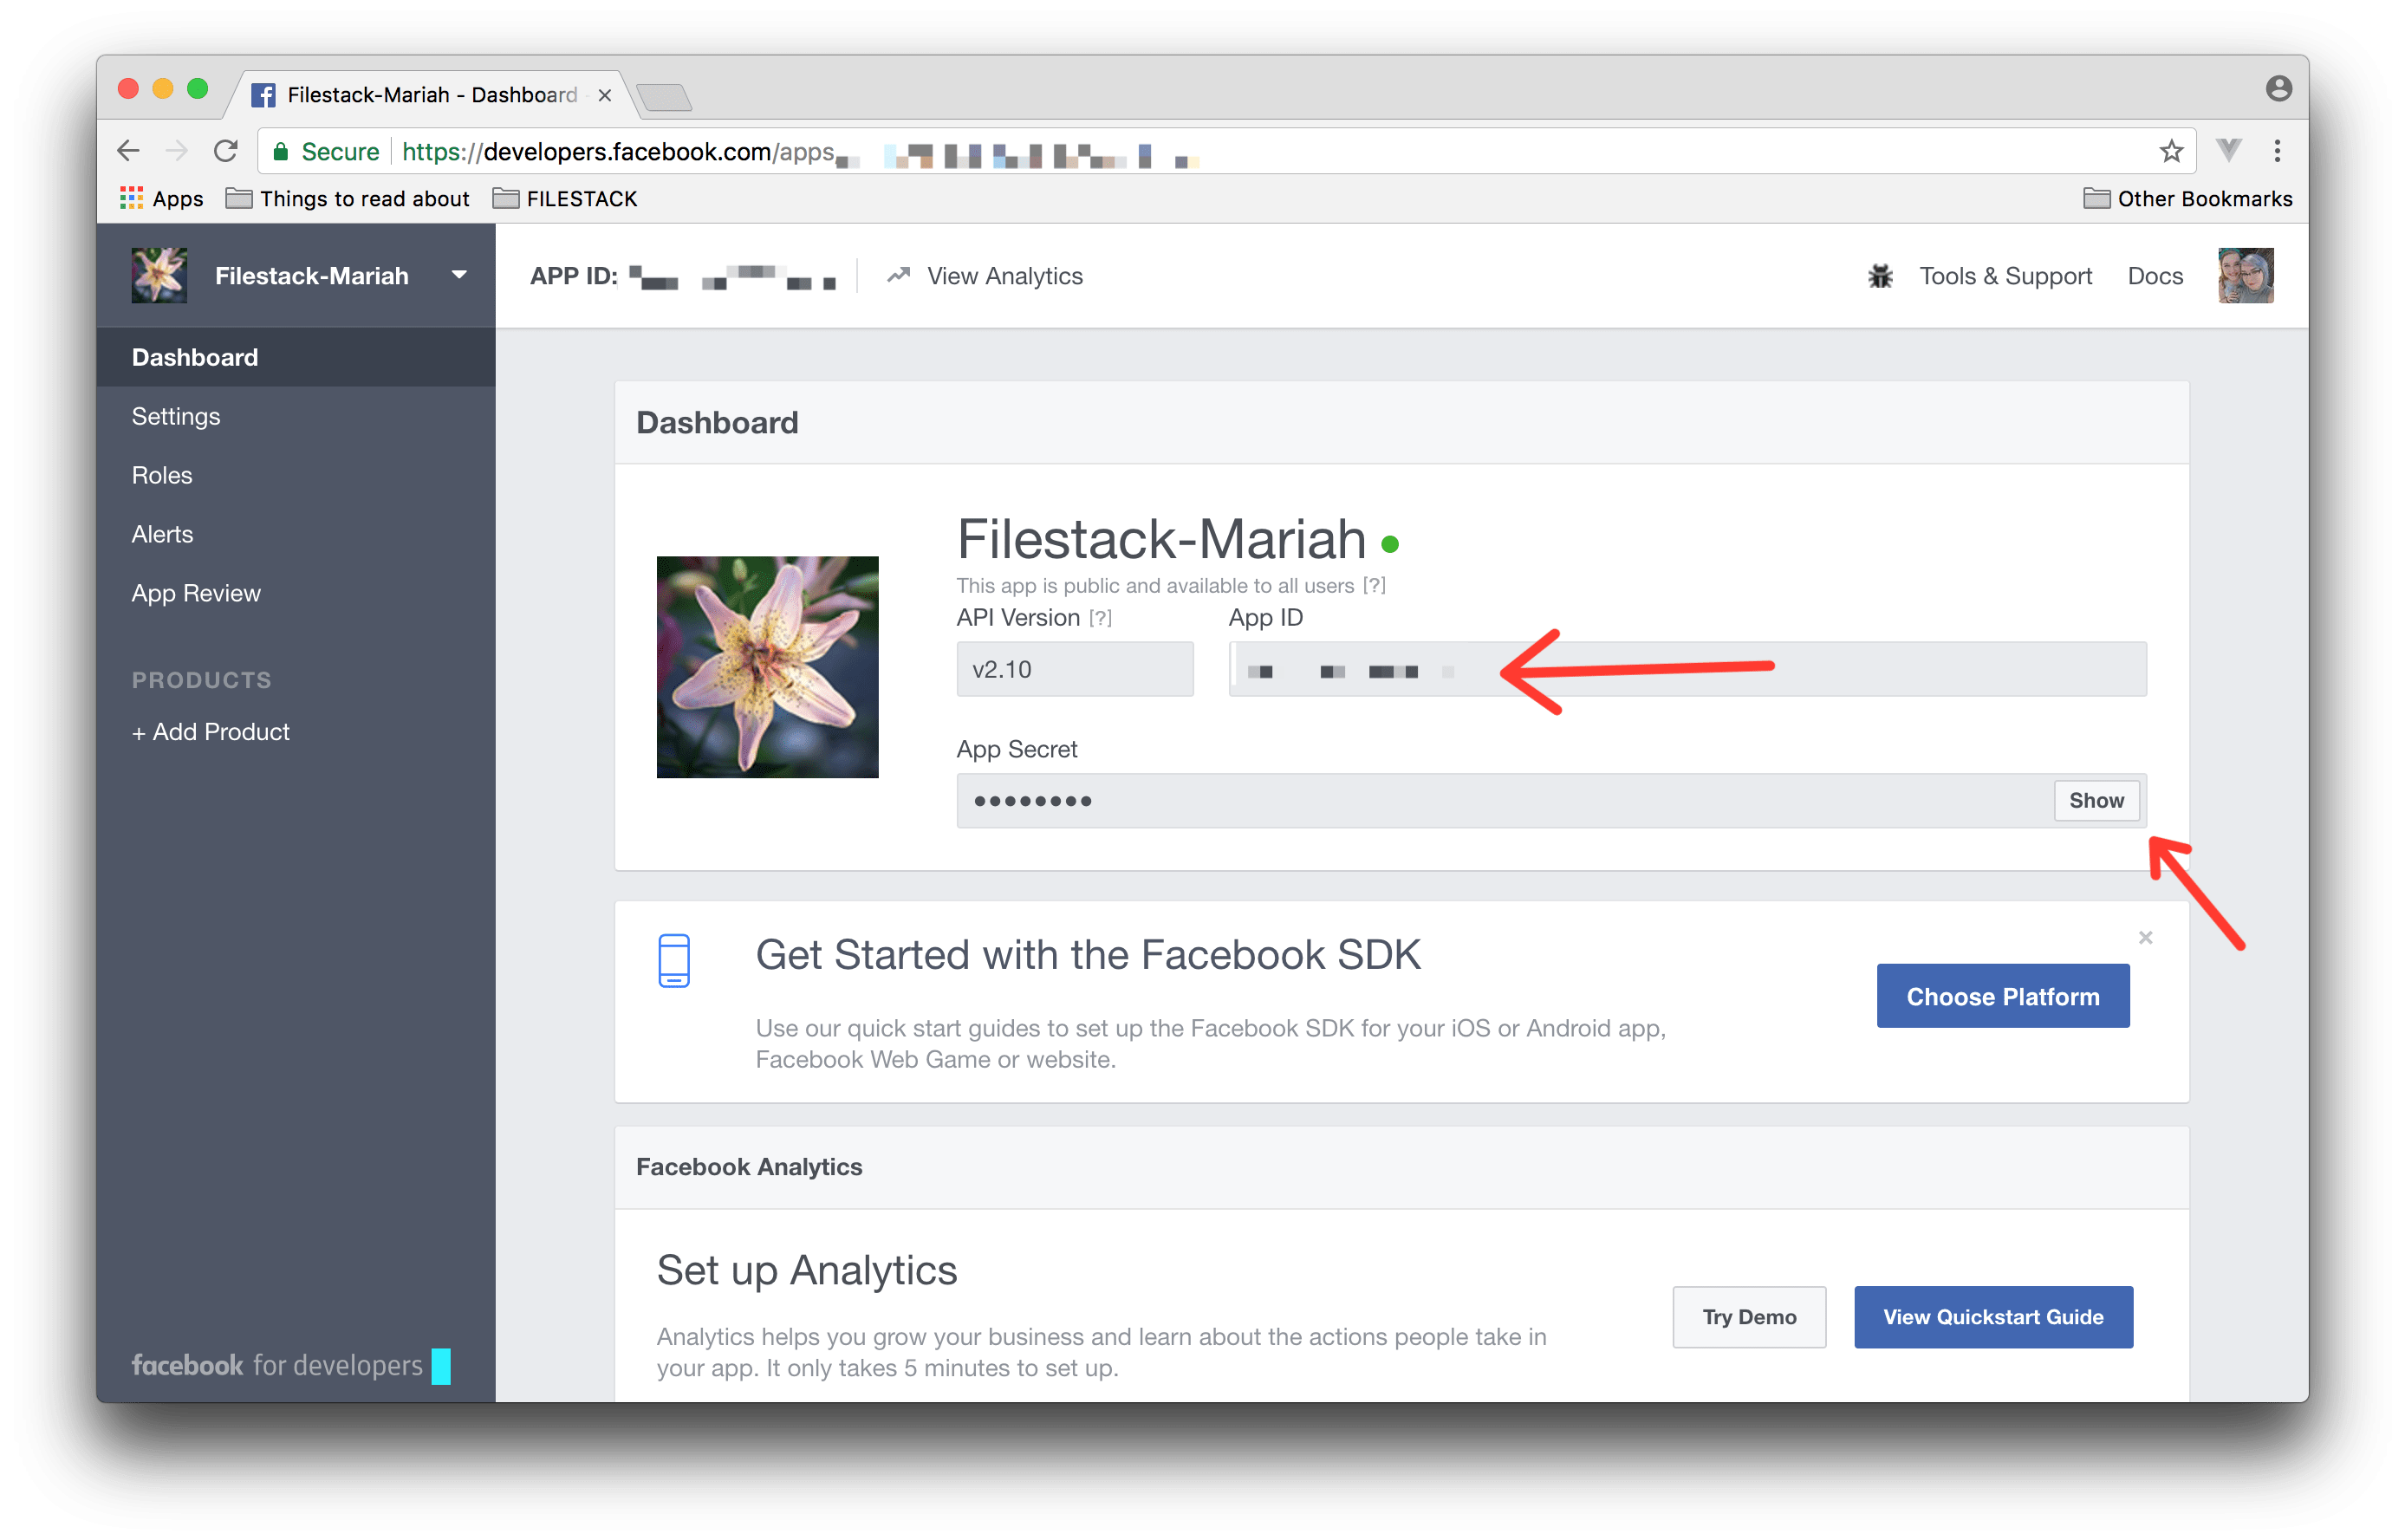 Screenshot showing Dashboard in Facebook for Developers